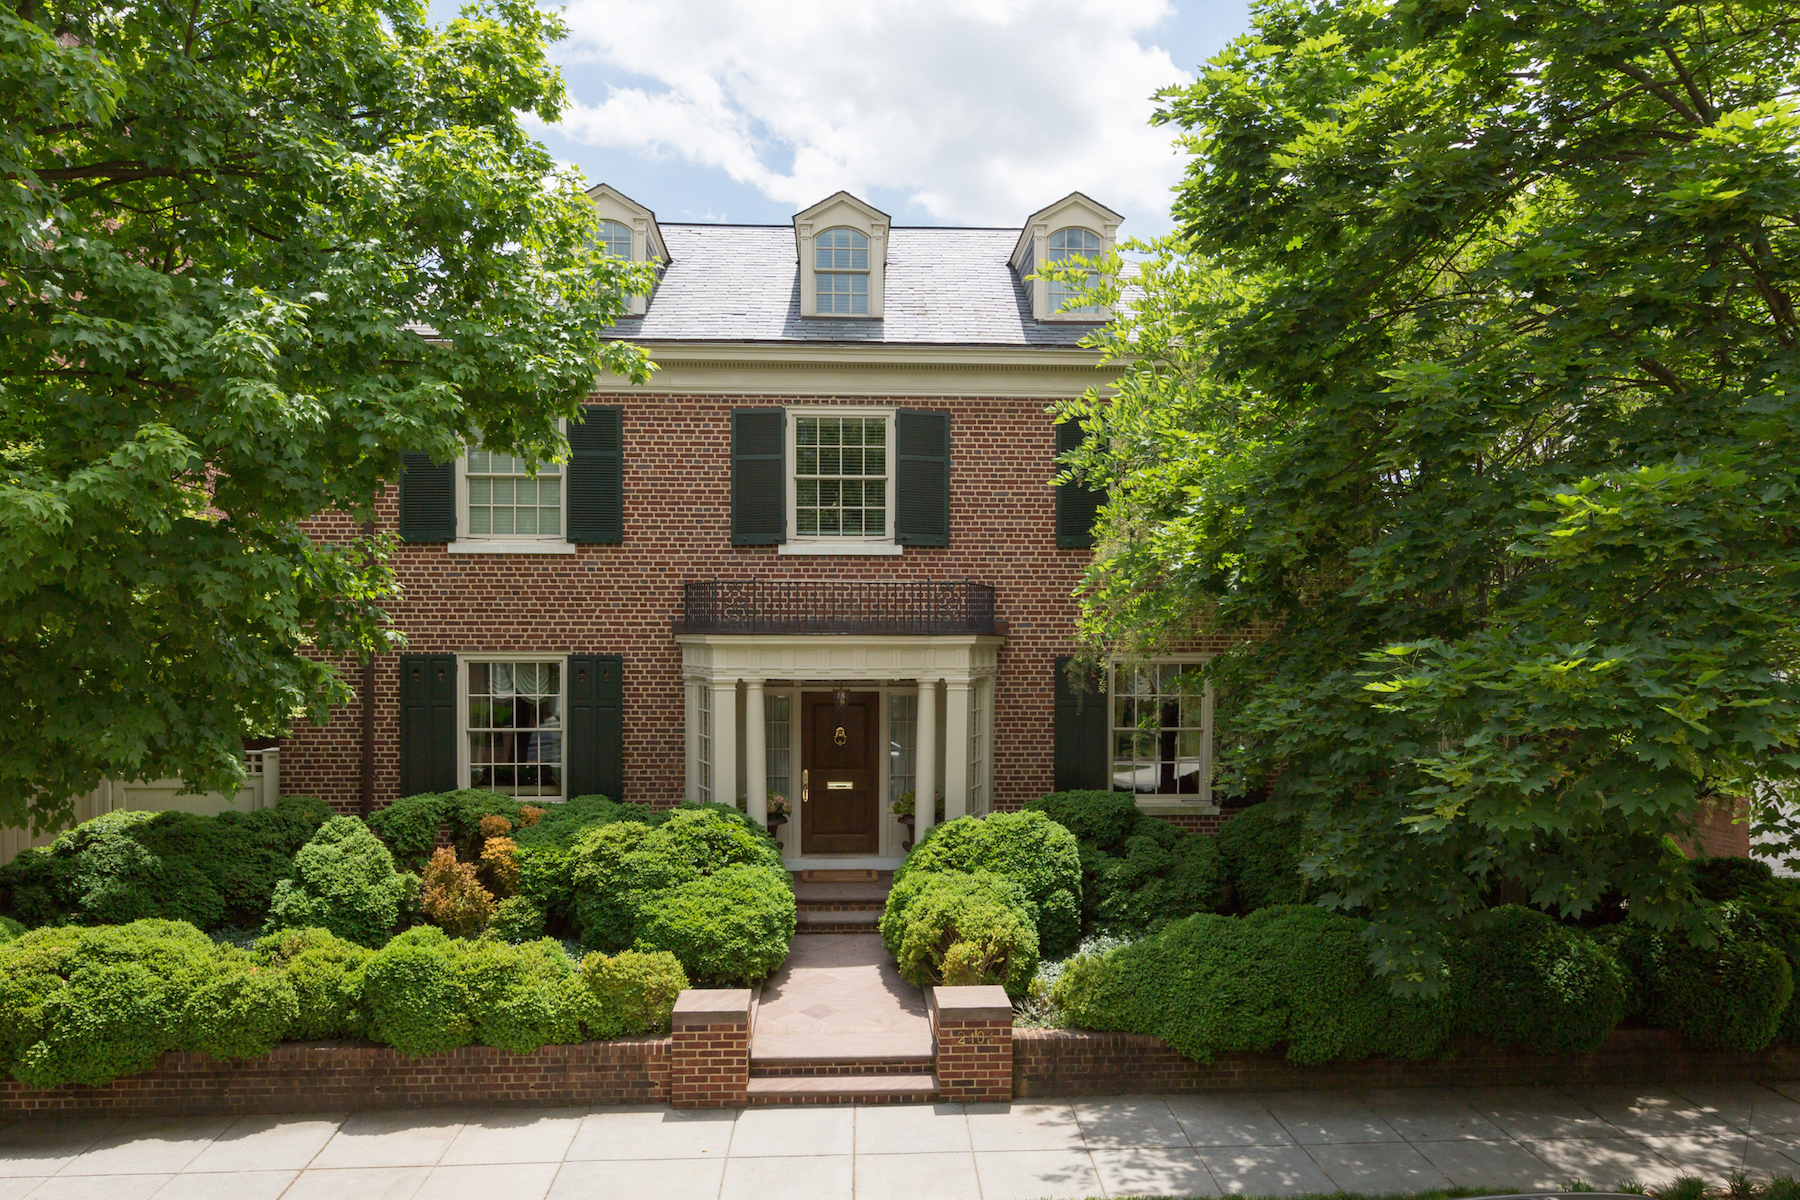 Single Family Home for Sale at Kalorama 2404 Wyoming Avenue NW Washington, District Of Columbia, 20008 United States